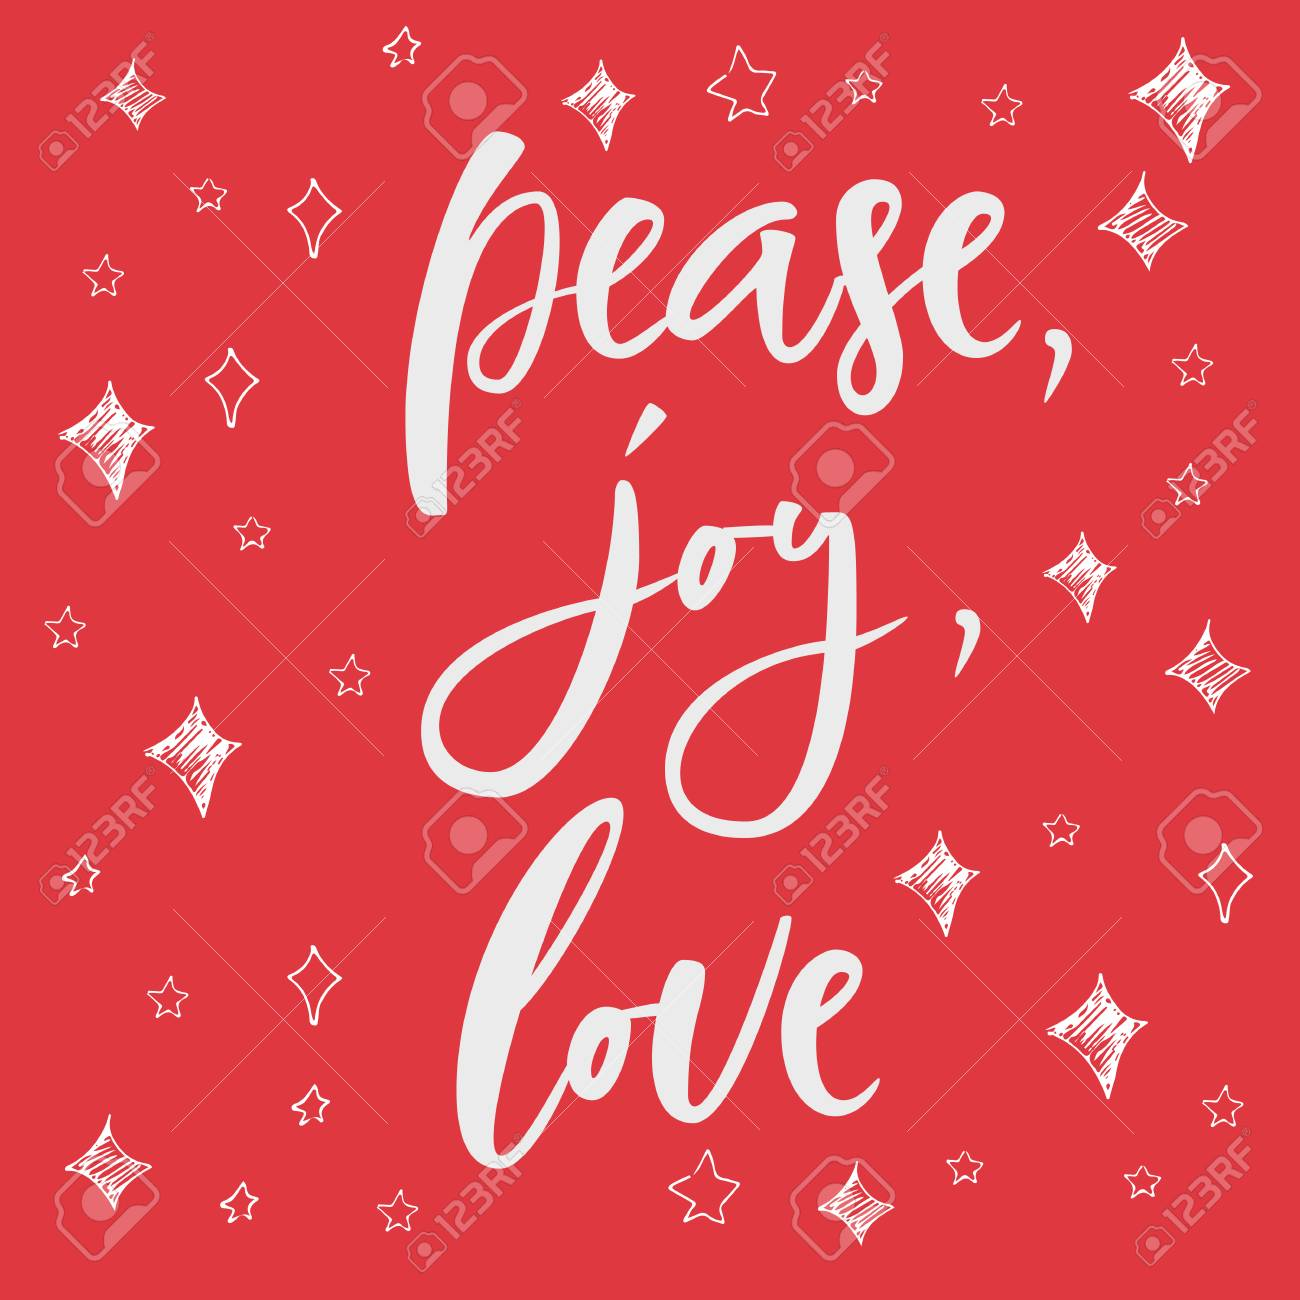 Pease, Joy, Love Greeting Card On Christmas Background. Hand ...